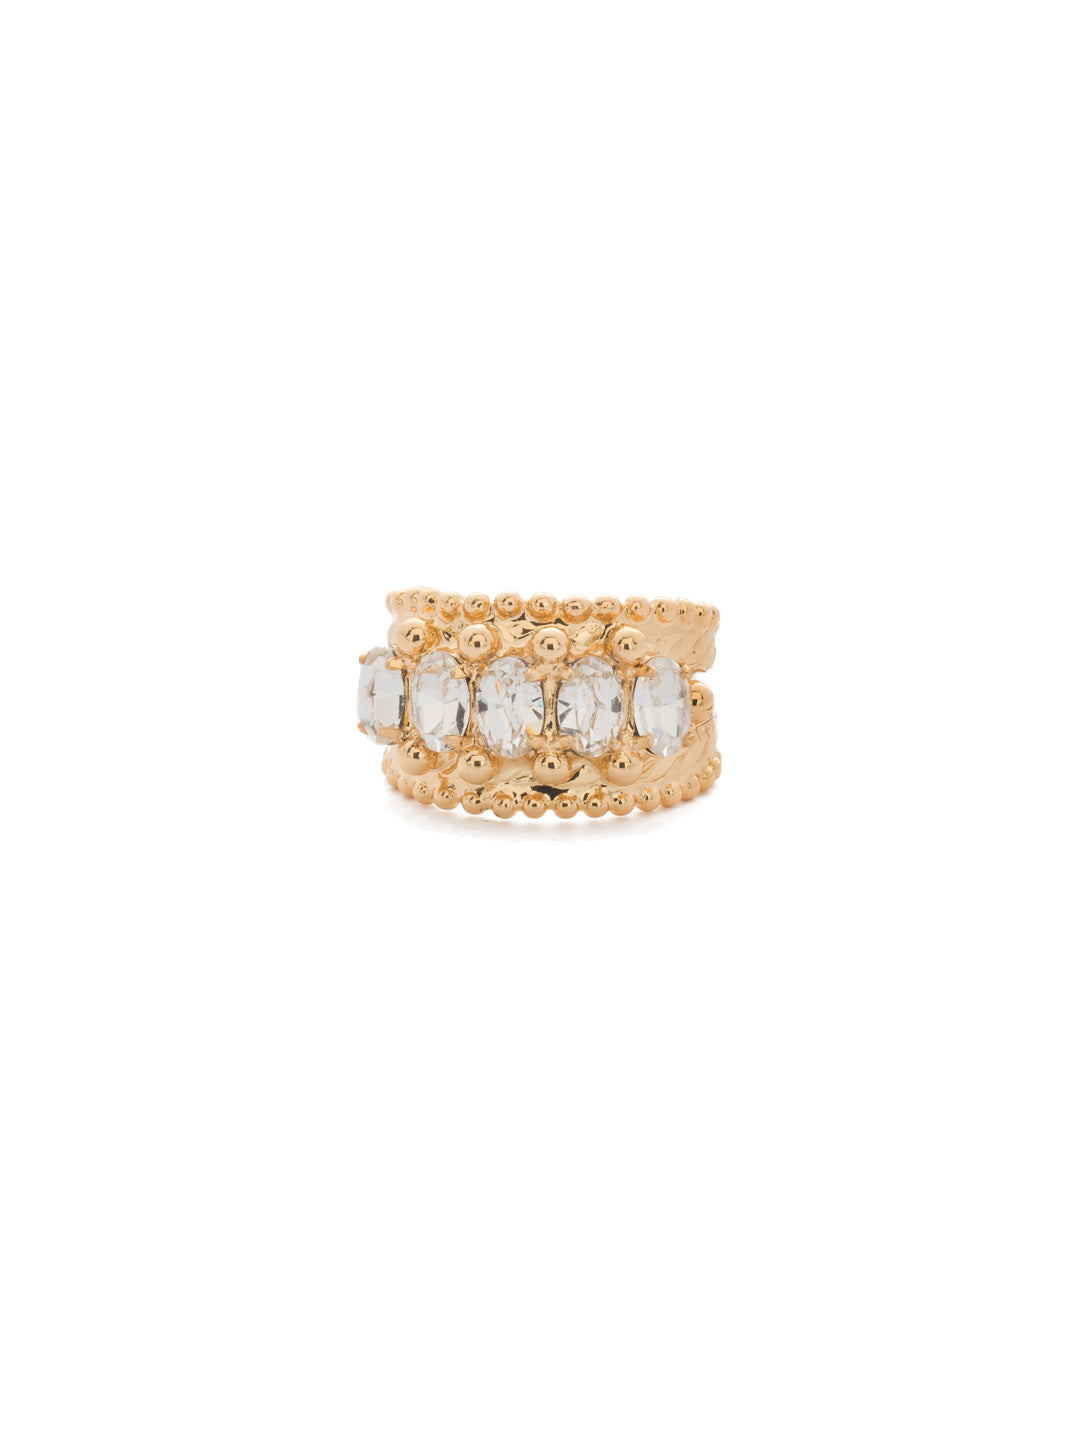 Crown Jewel Cocktail Ring - RDH2BGCRY